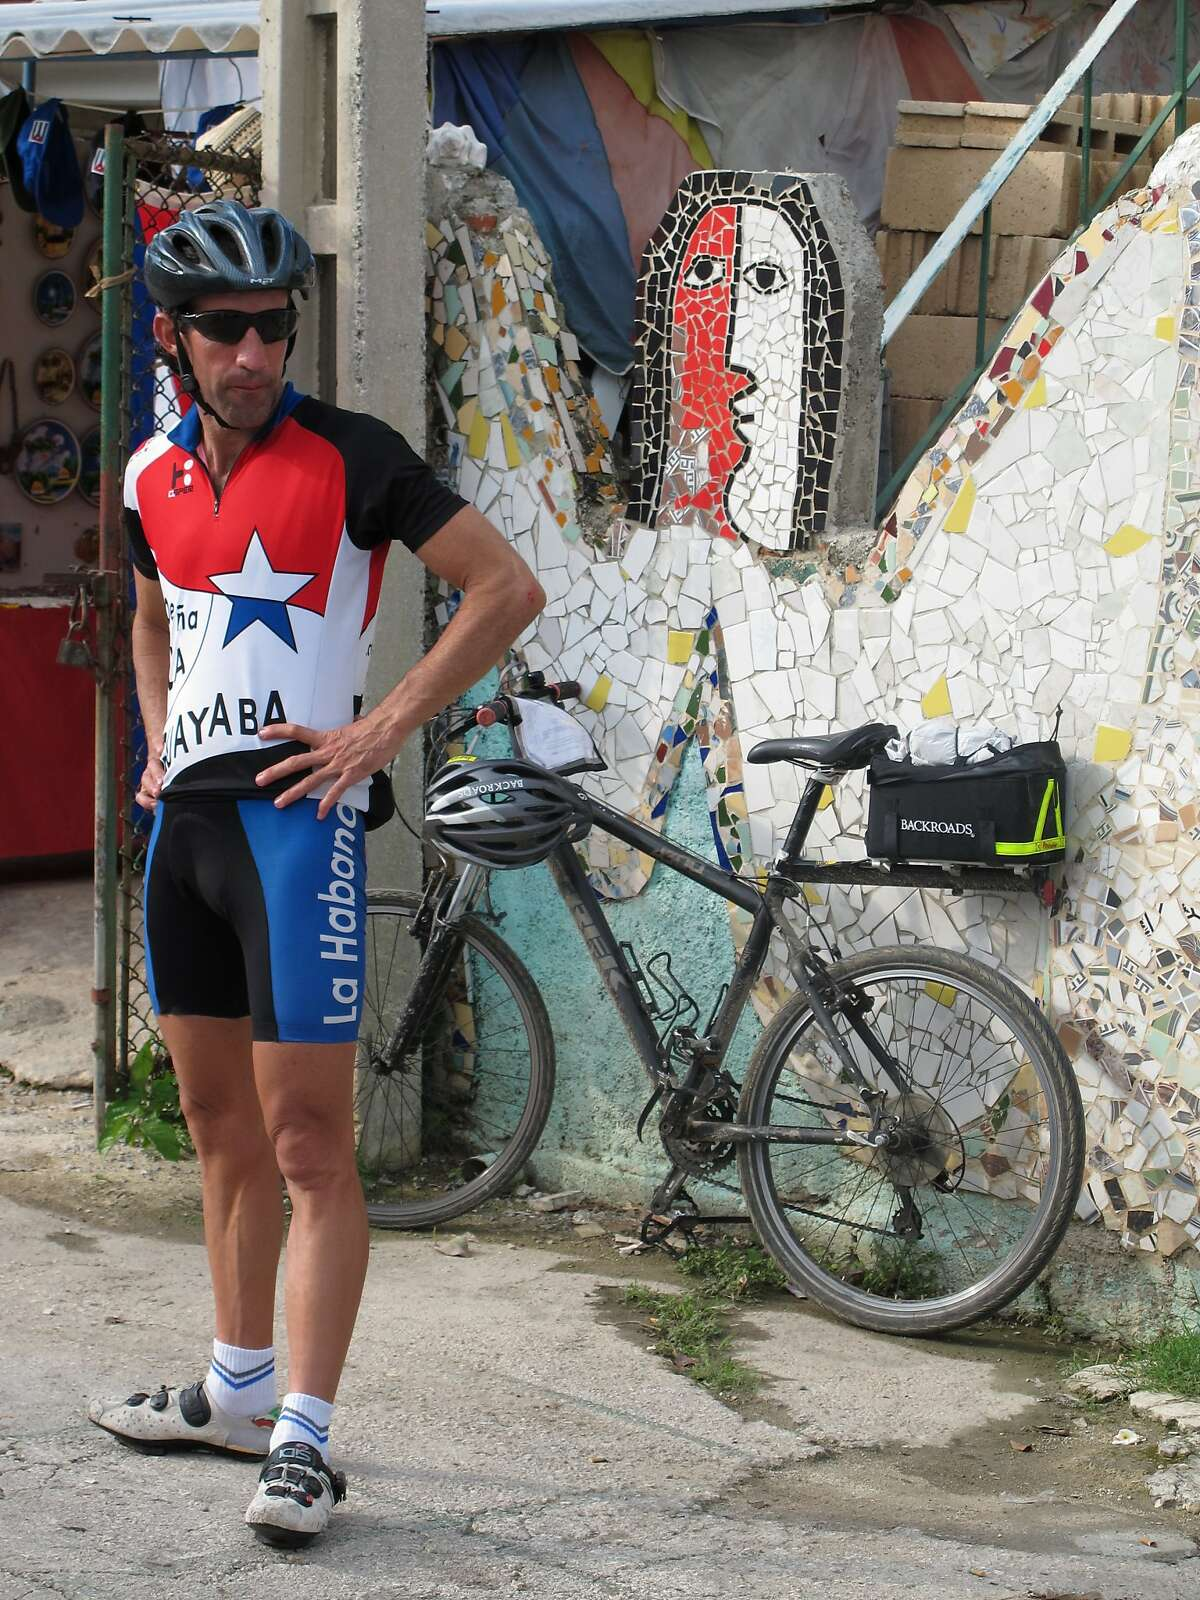 Members of the Cuba Cycling Team in the town of Playa Jaimanitas, also called